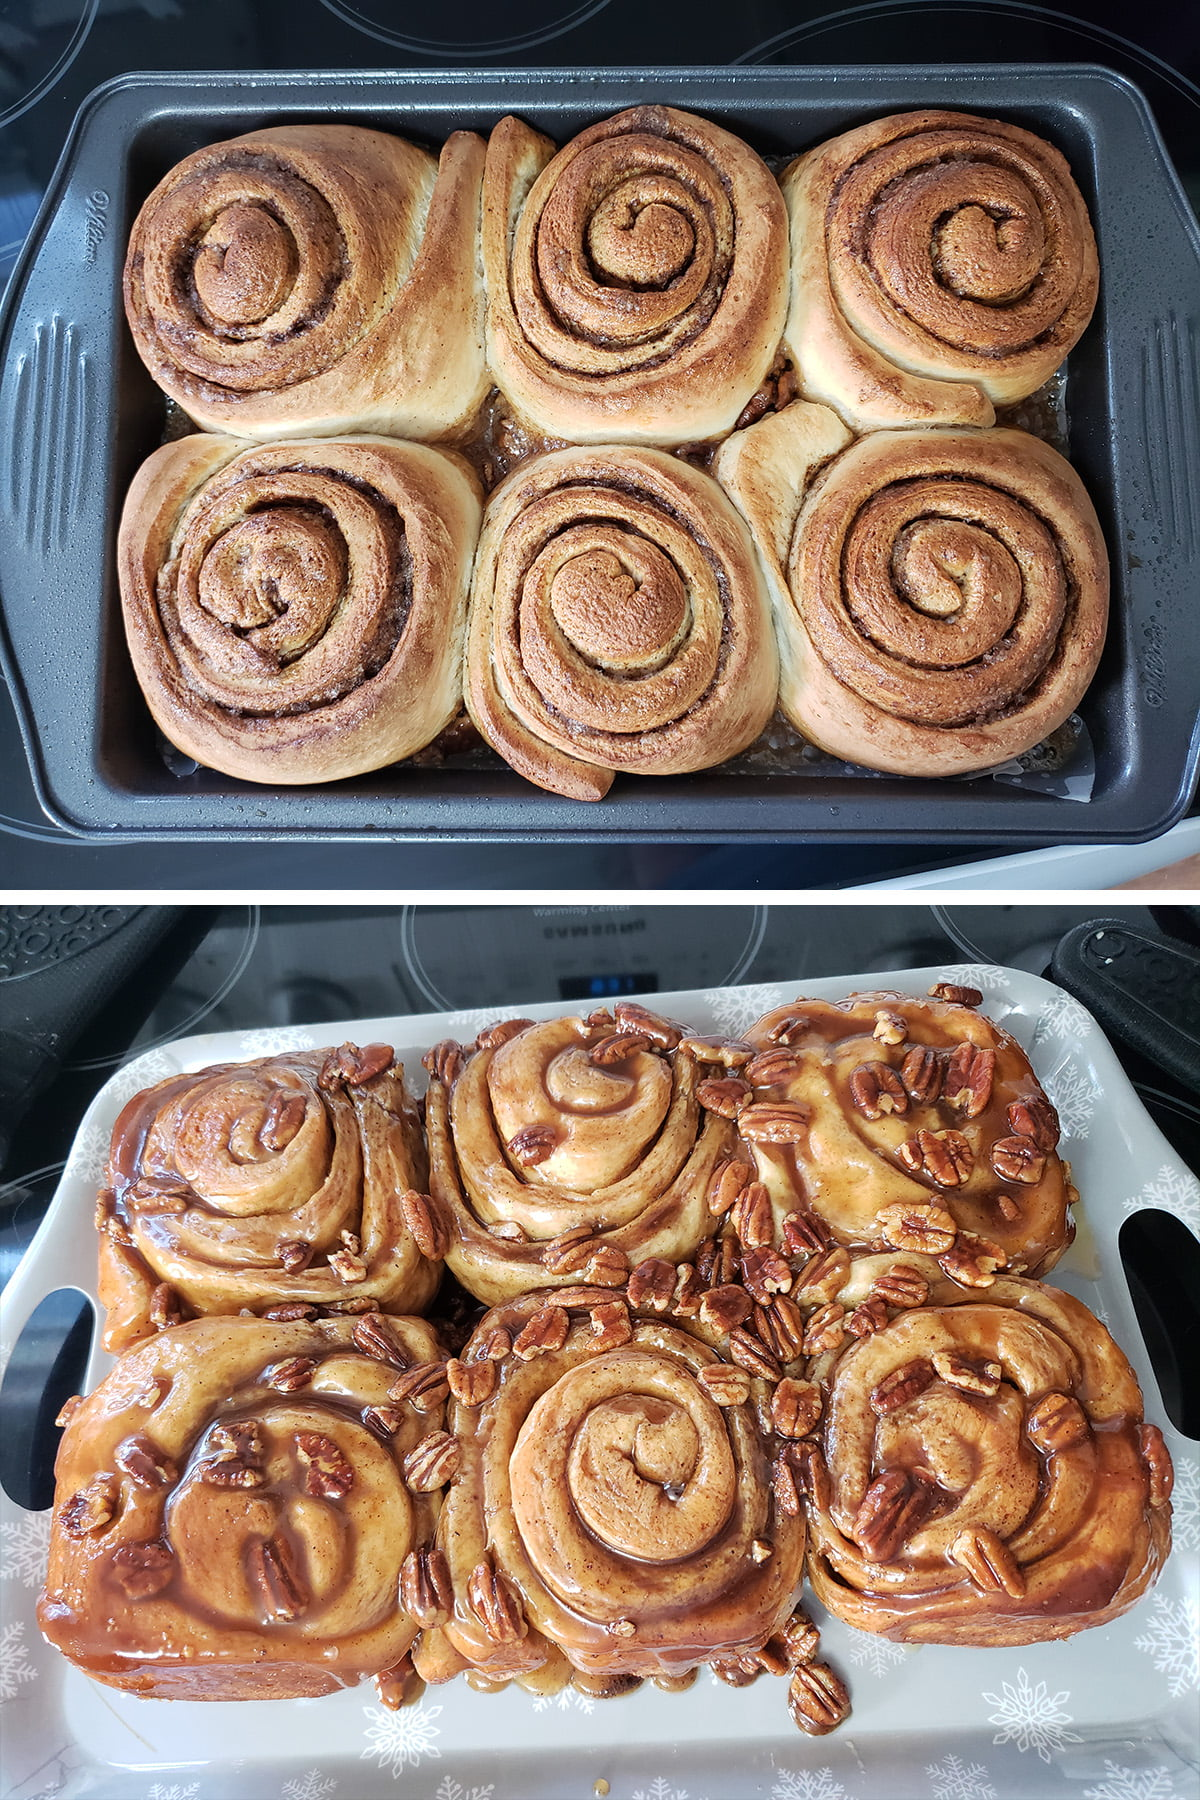 A two photo compilation image showing the baked rolls. In the top image, they are golden brown and still in the pan. In the bottom image, they've been inverted out onto a tray, with caramel oozing!